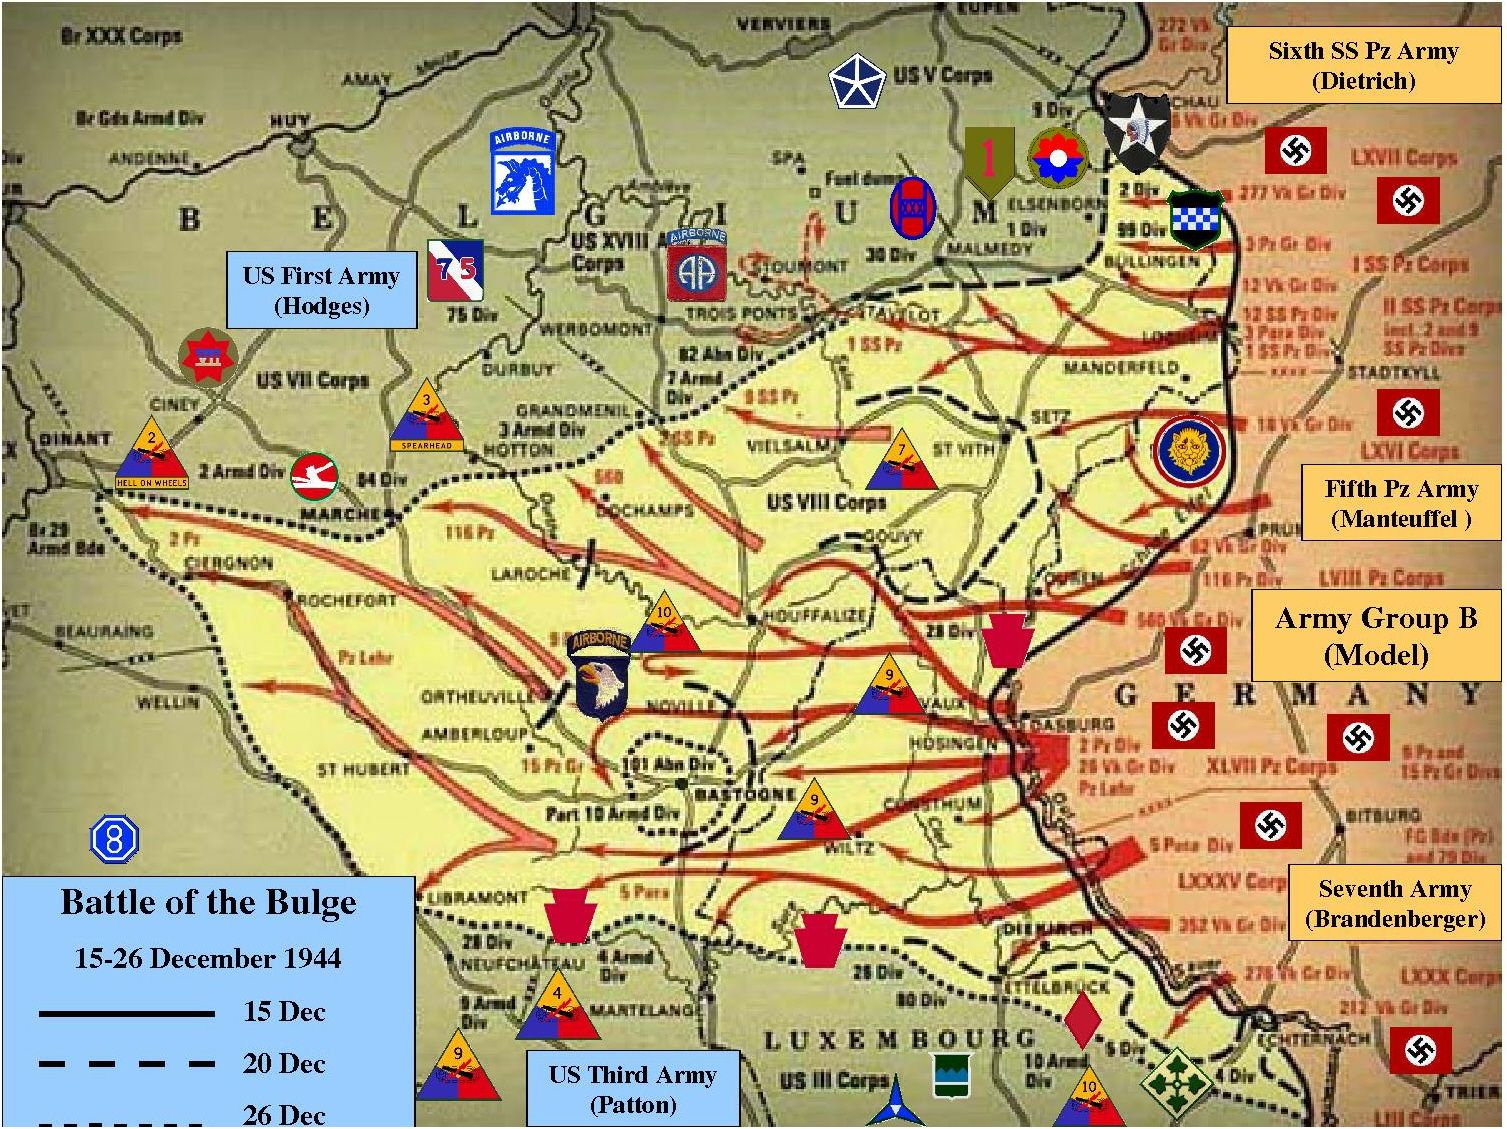 Map battle of the bulge battle of the bulge december 16 26 1944 ww2 facts map battle of the bulge battle of the bulge december 16 26 gumiabroncs Image collections